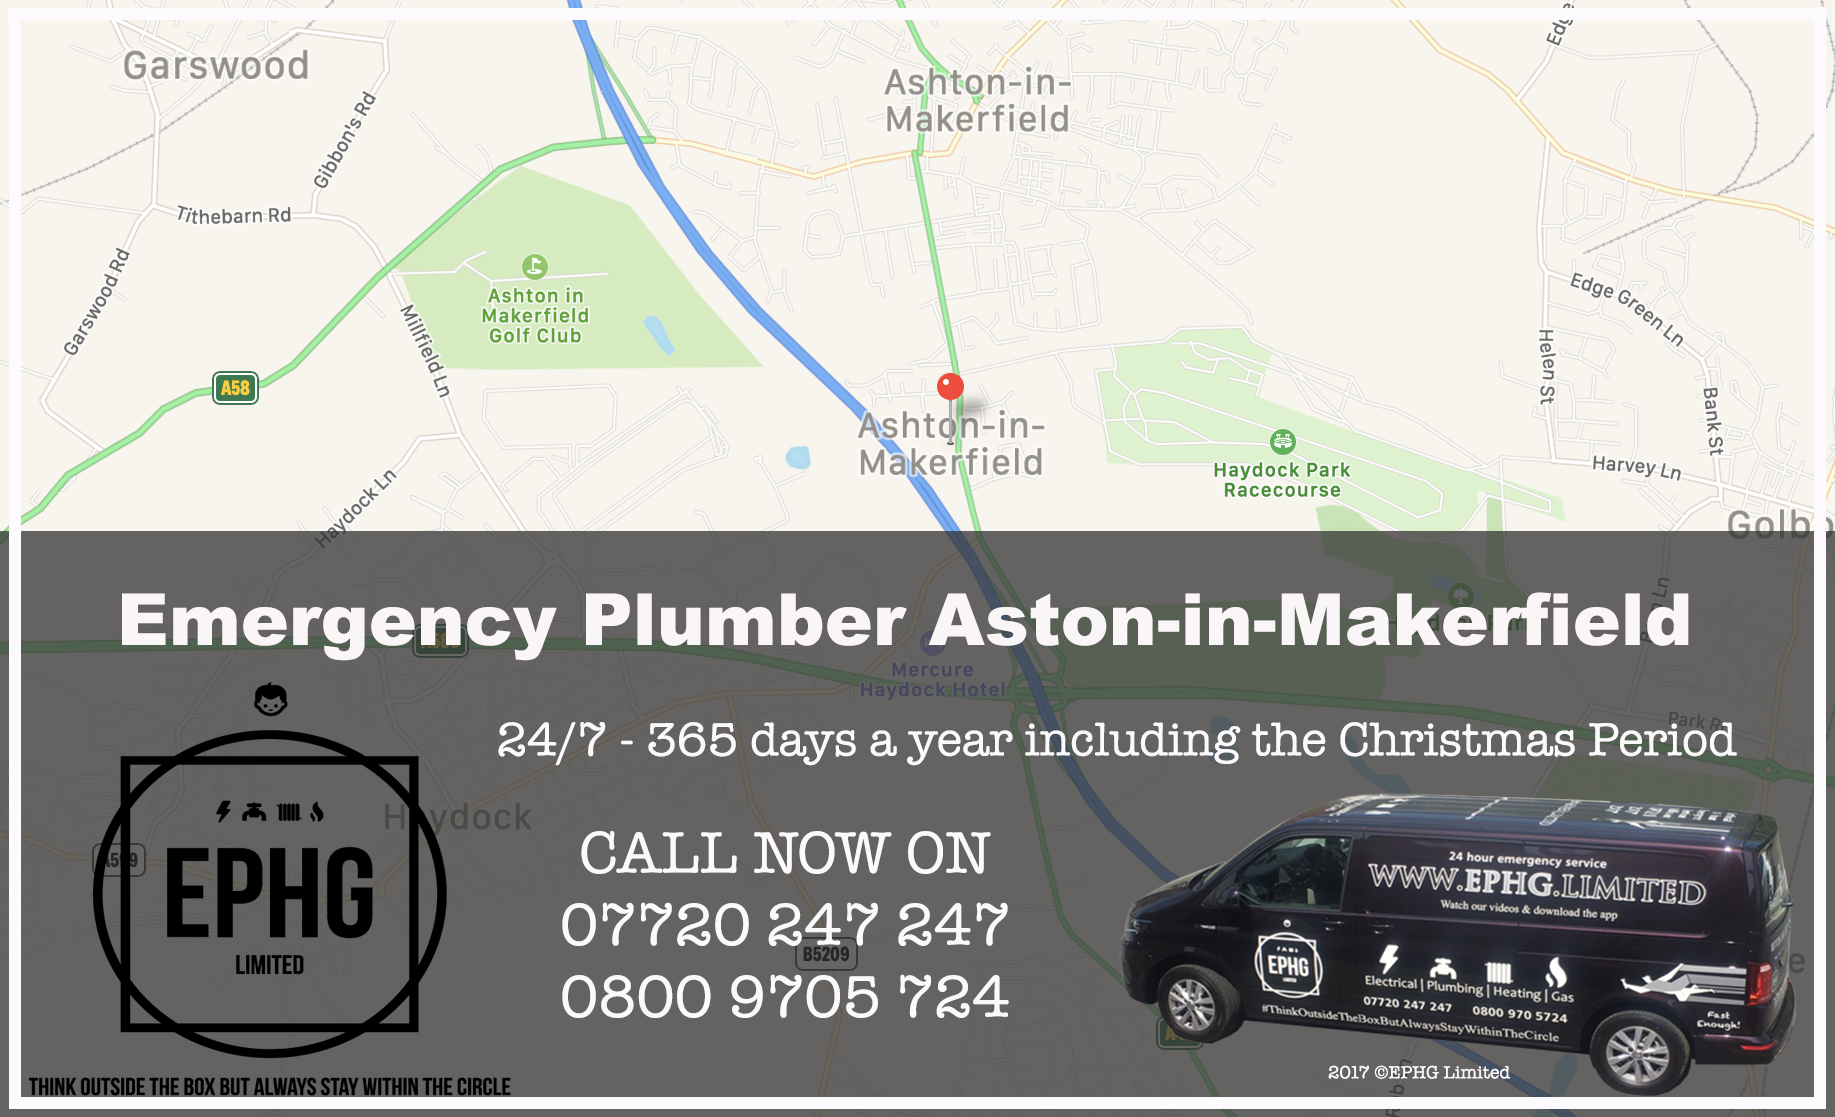 24 Hour Emergency Plumber Ashton-in-Makerfield